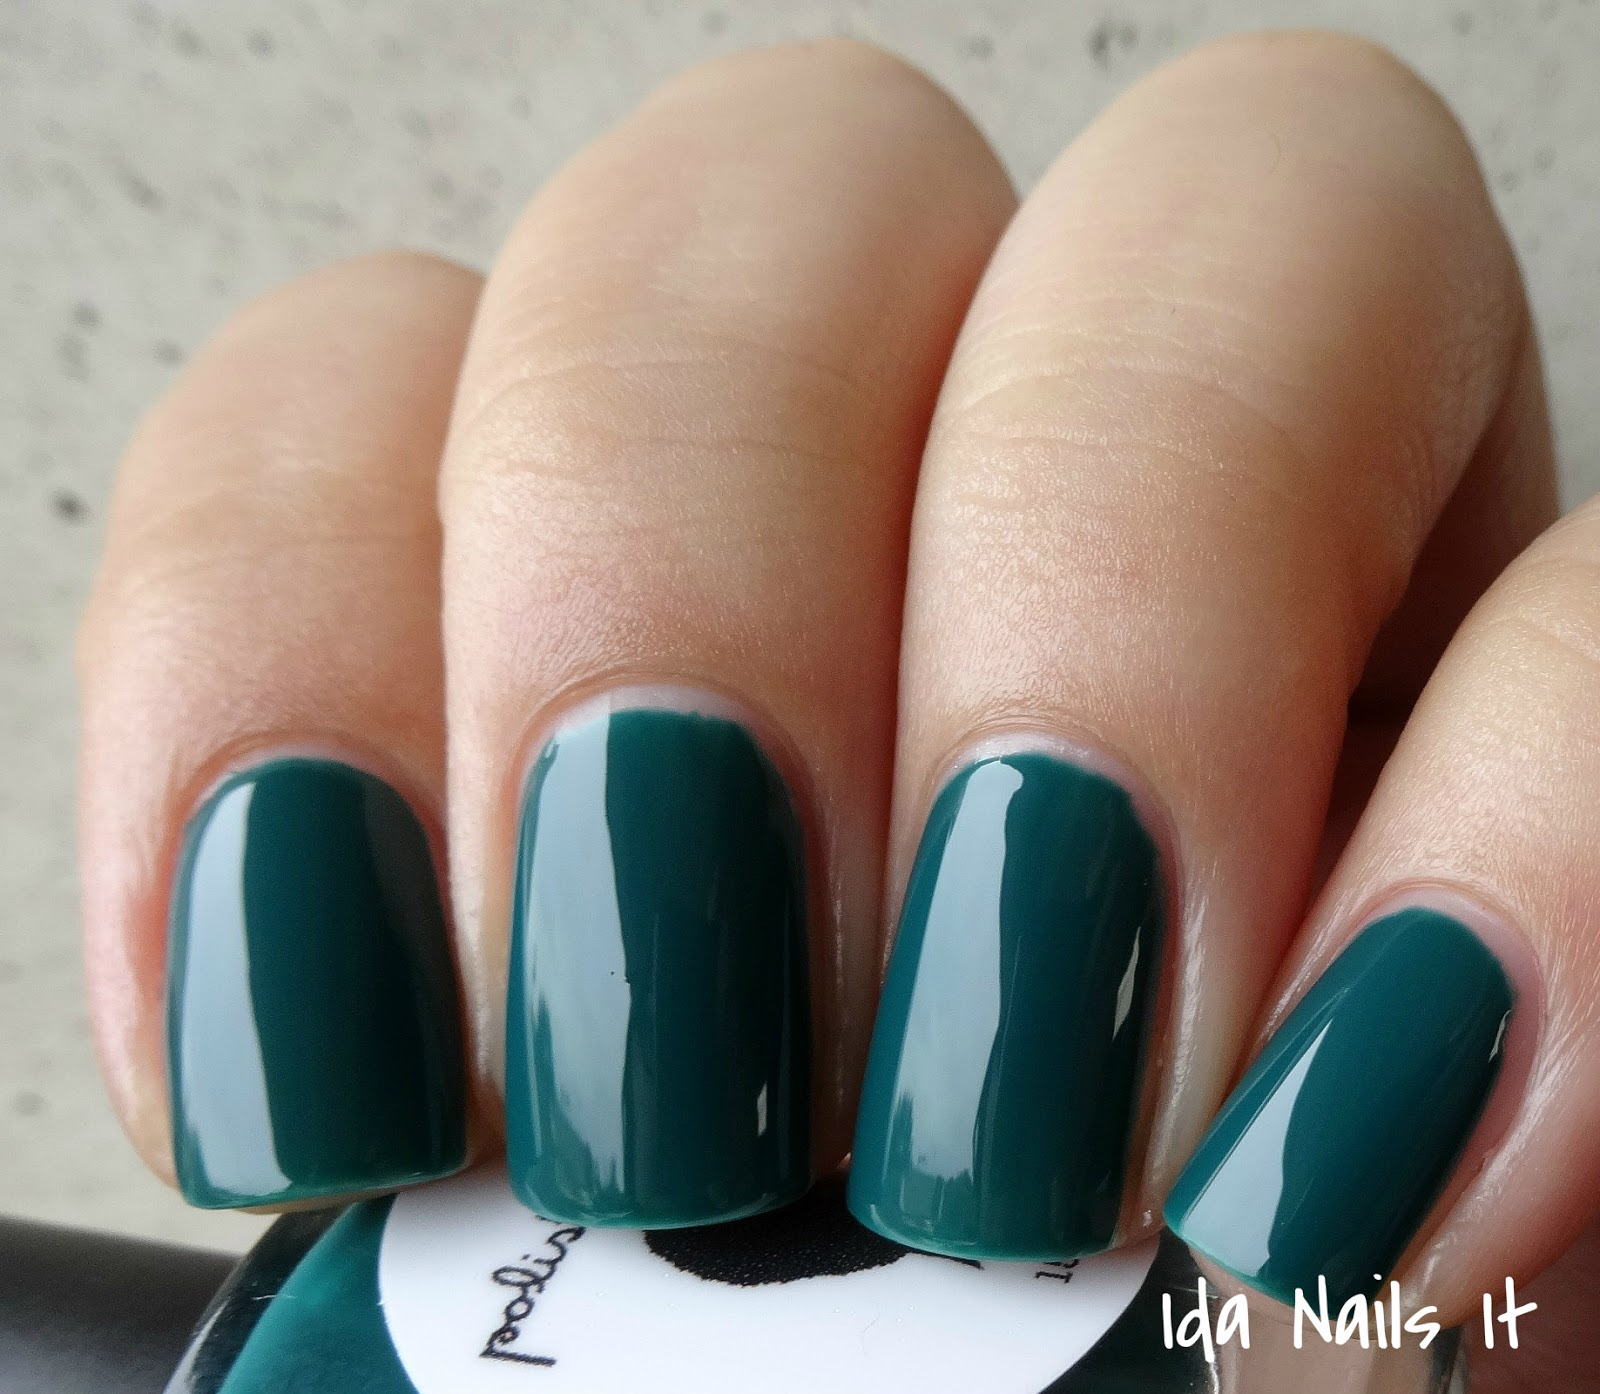 Ida Nails It: Polish My Life Holiday Collection: Swatches and Review